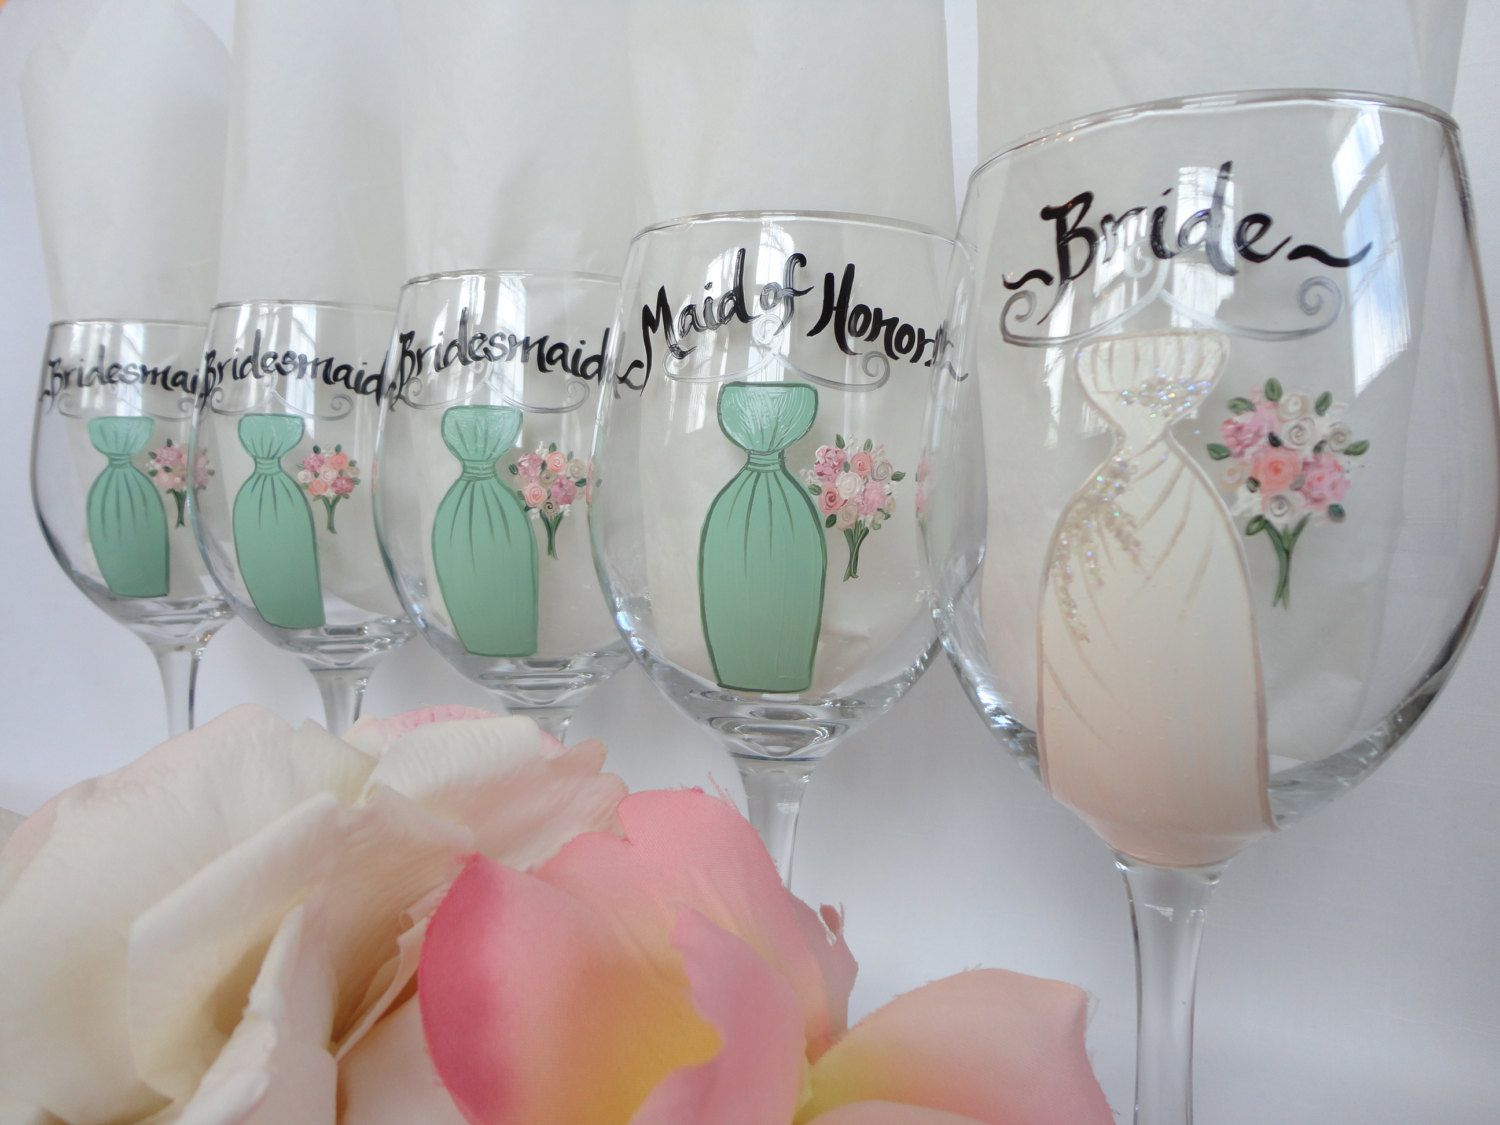 How to decorate wine glasses for bridesmaids - Personalized To Match Your Dresses Hand Painted Bridesmaid Wine Glasses Wedding Wine Glasses